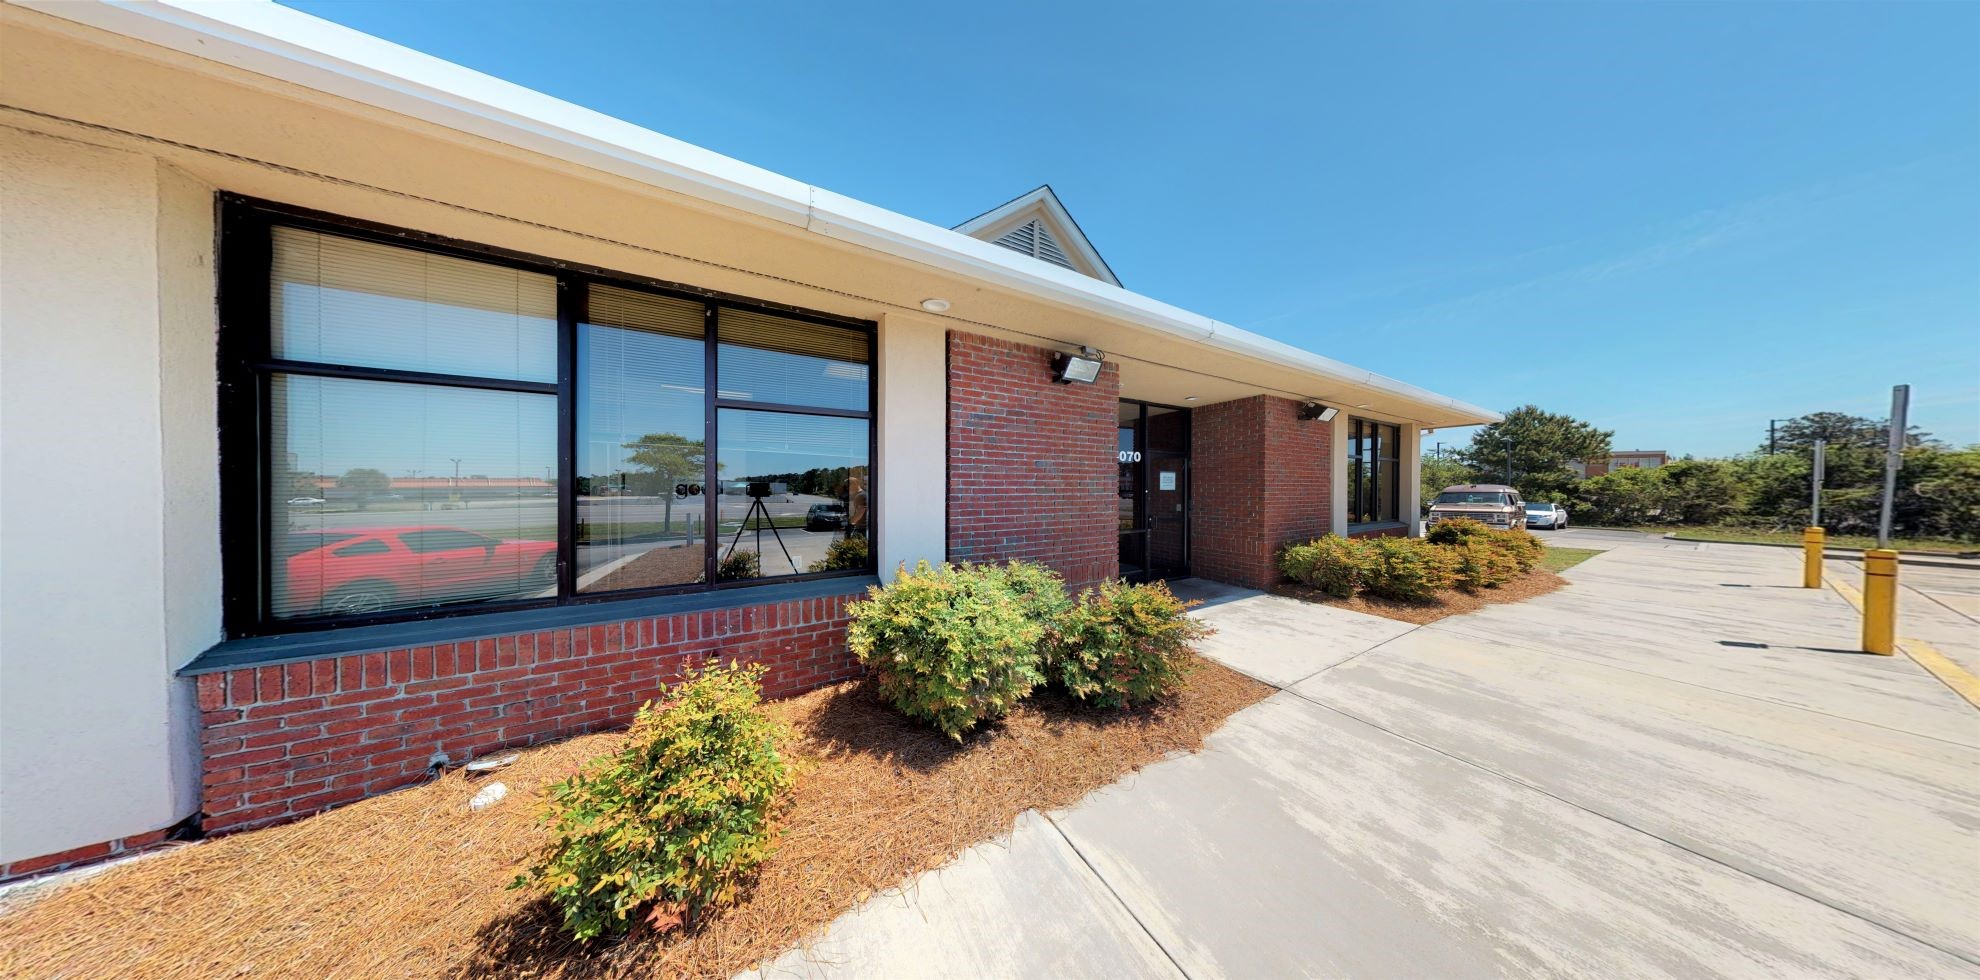 Bank of America financial center with drive-thru ATM | 5070 Southport Supply Rd SE, Southport, NC 28461